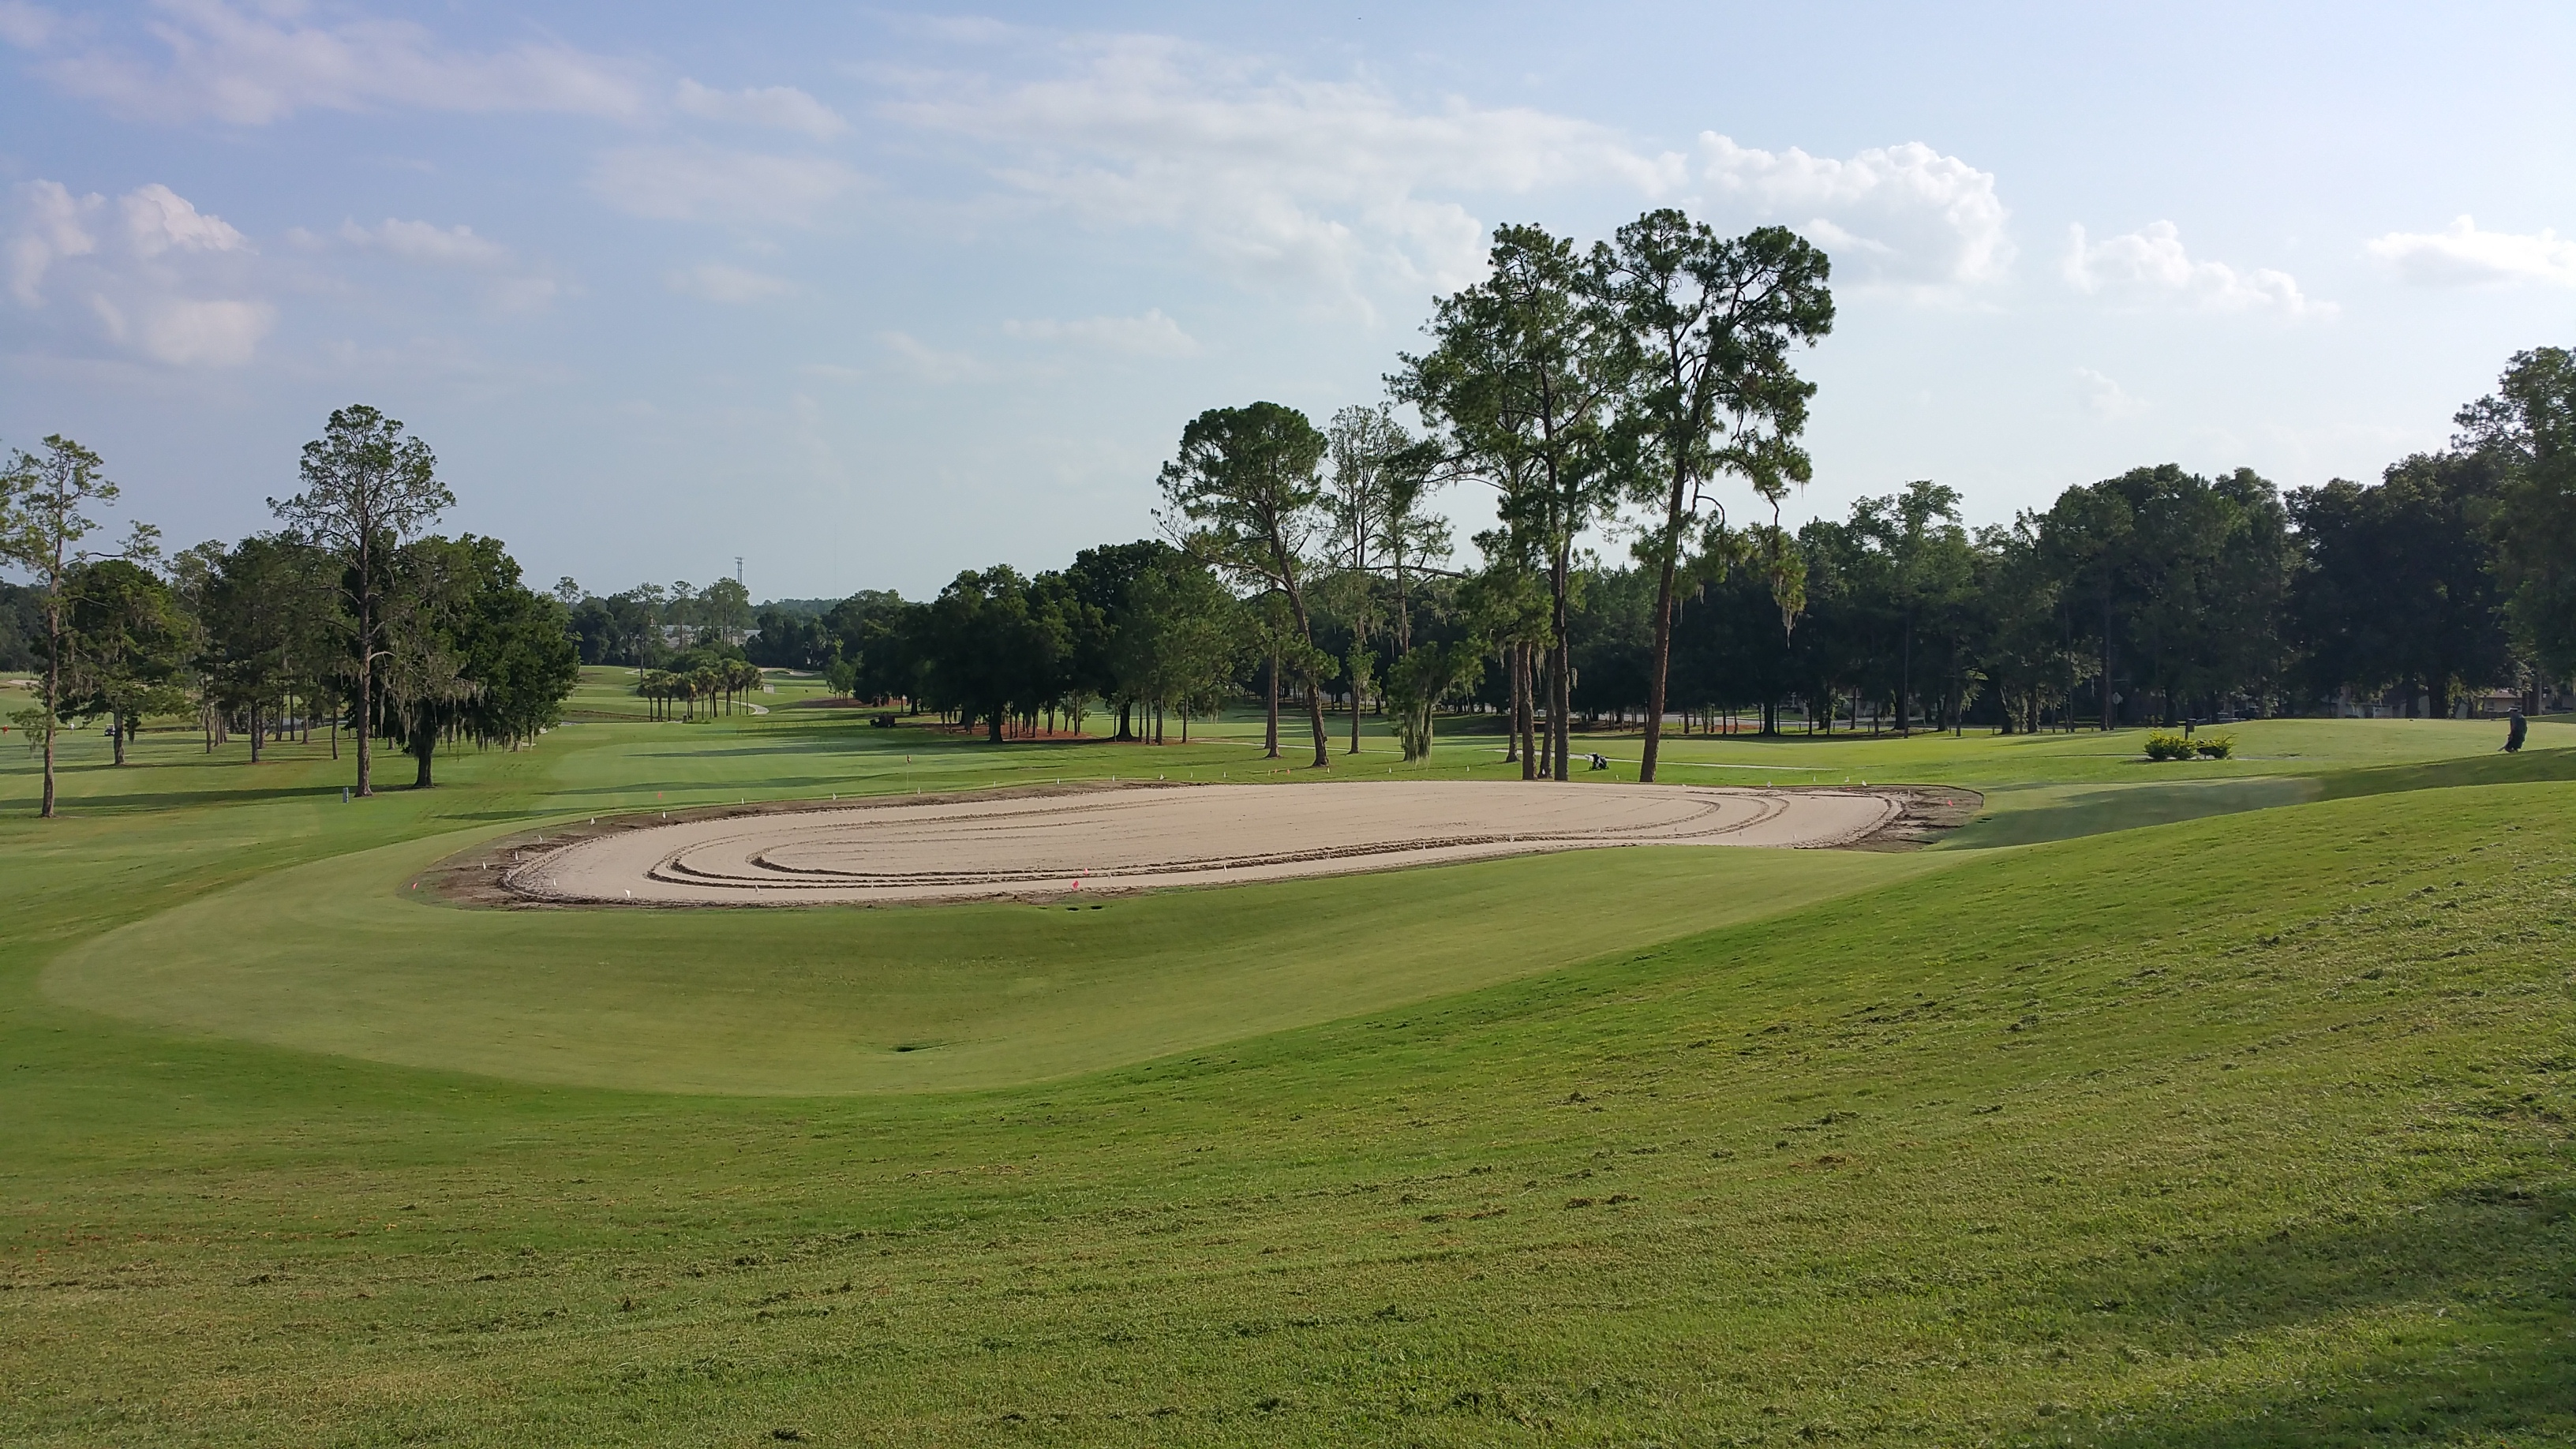 Hole number 6 at Ocala Golf Club in Ocala, FL after the soil has been tilled